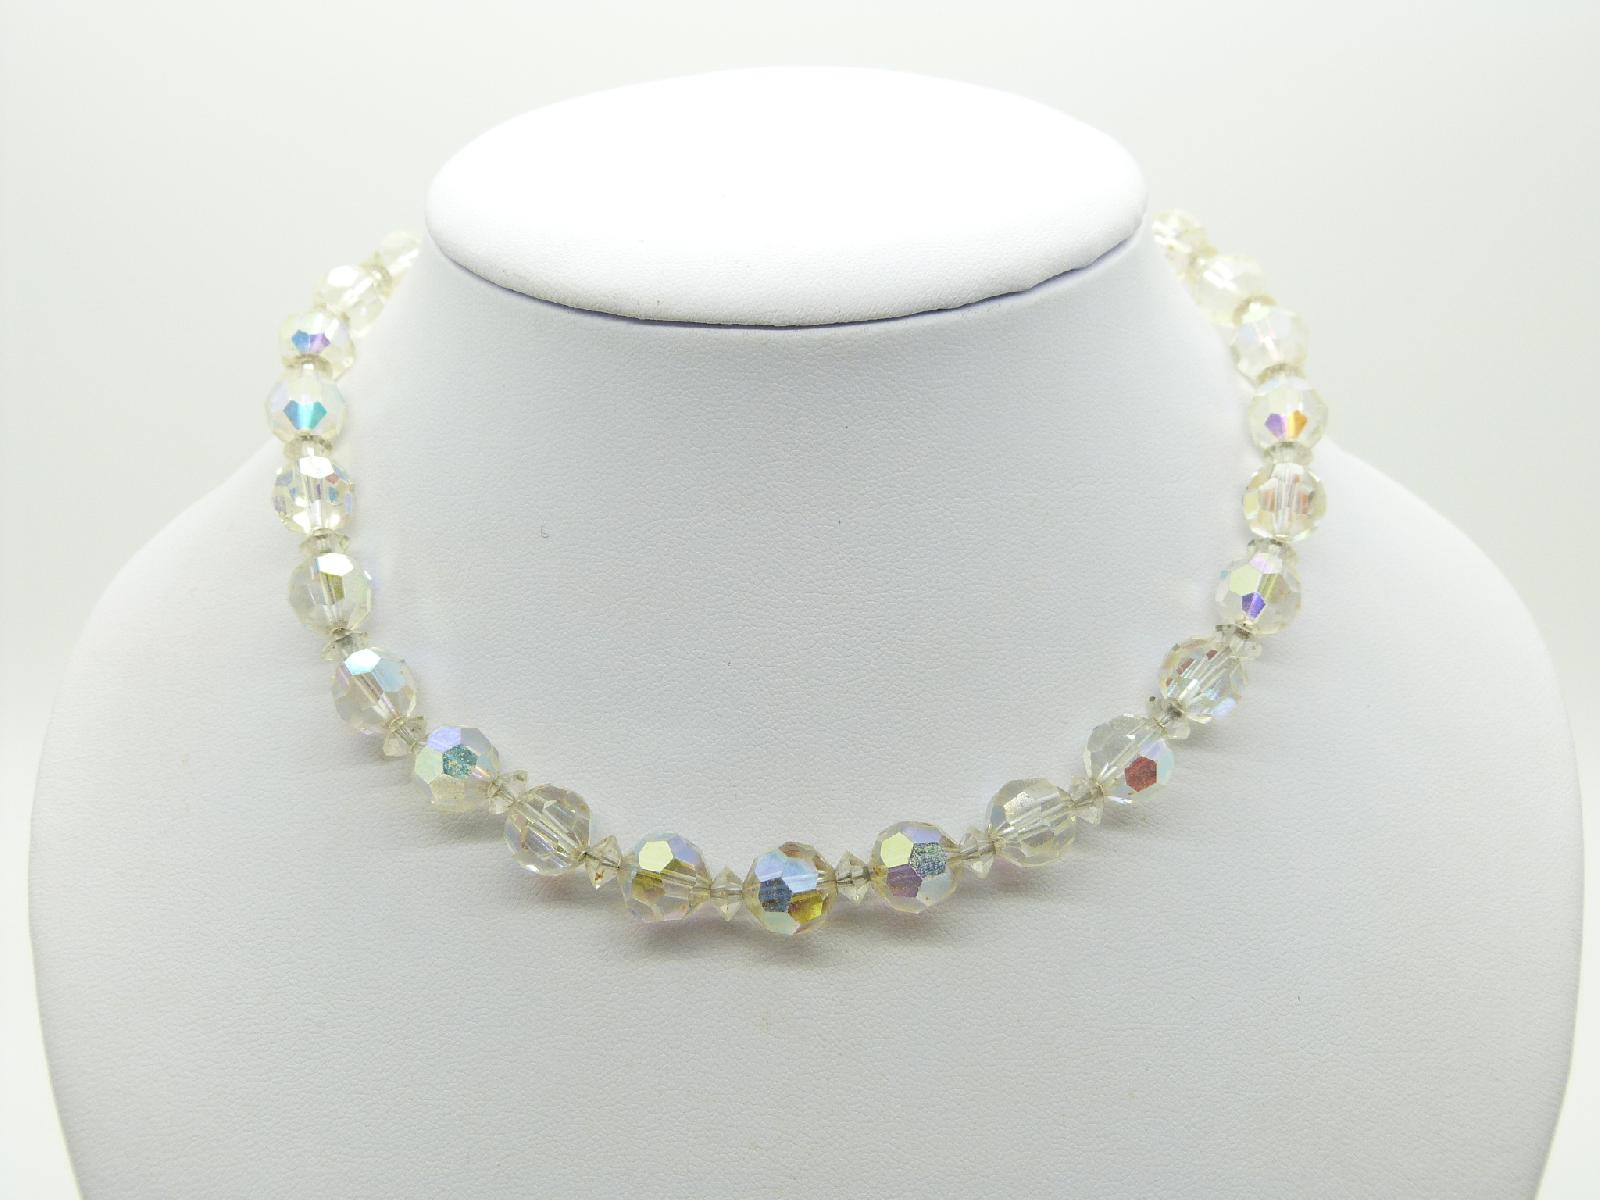 £14.00 - Vintage 50s Sparkling AB Crystal Glass Bead Necklace Super! 42cms